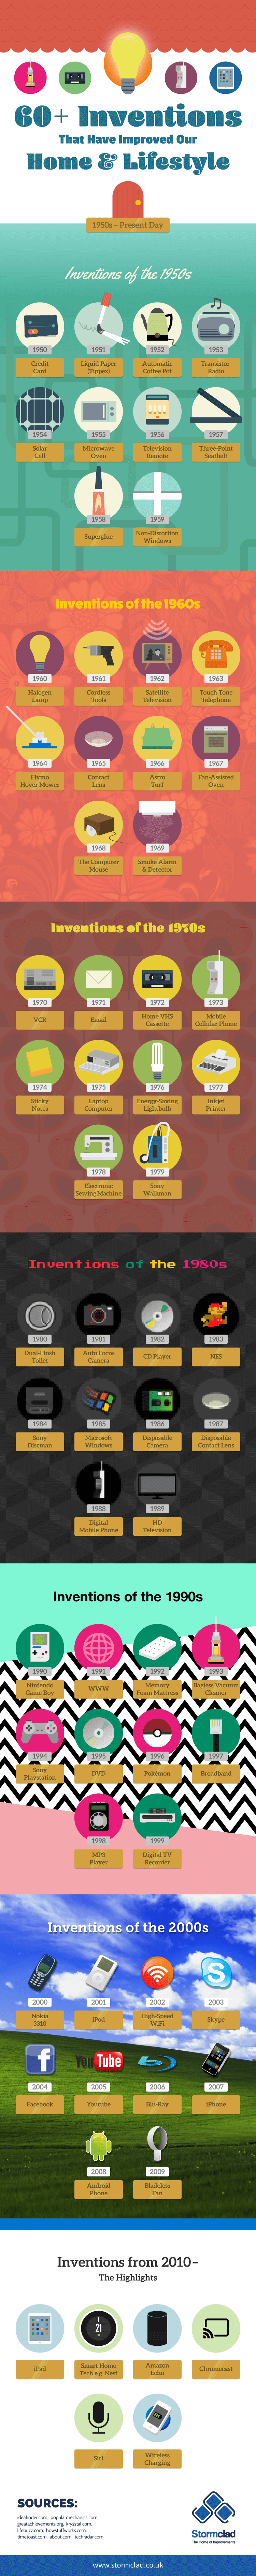 inventions that have changed our homes and lifestyle infographic